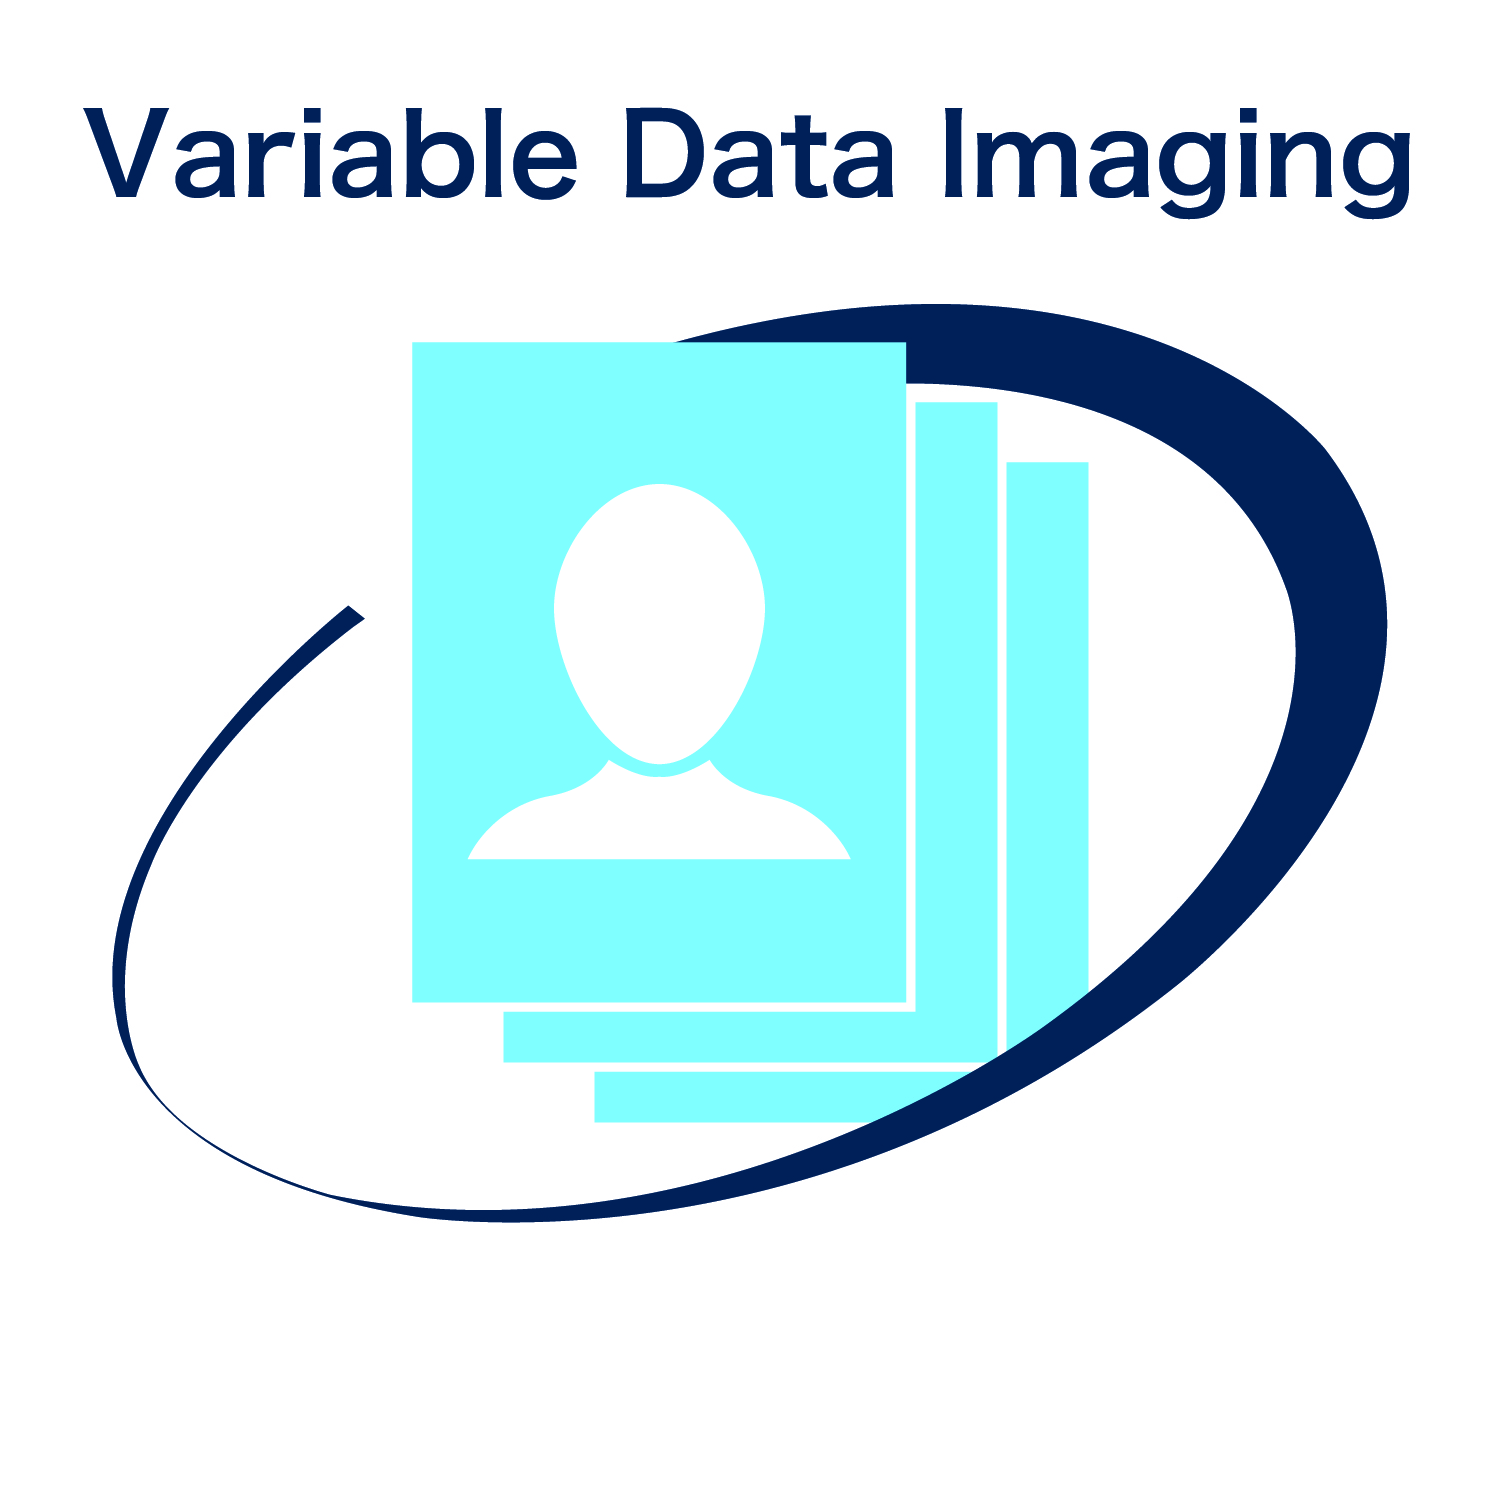 Our Variable Data Center is home to our on-site specialists who concentrate in full-color variable continuous form digital printing.